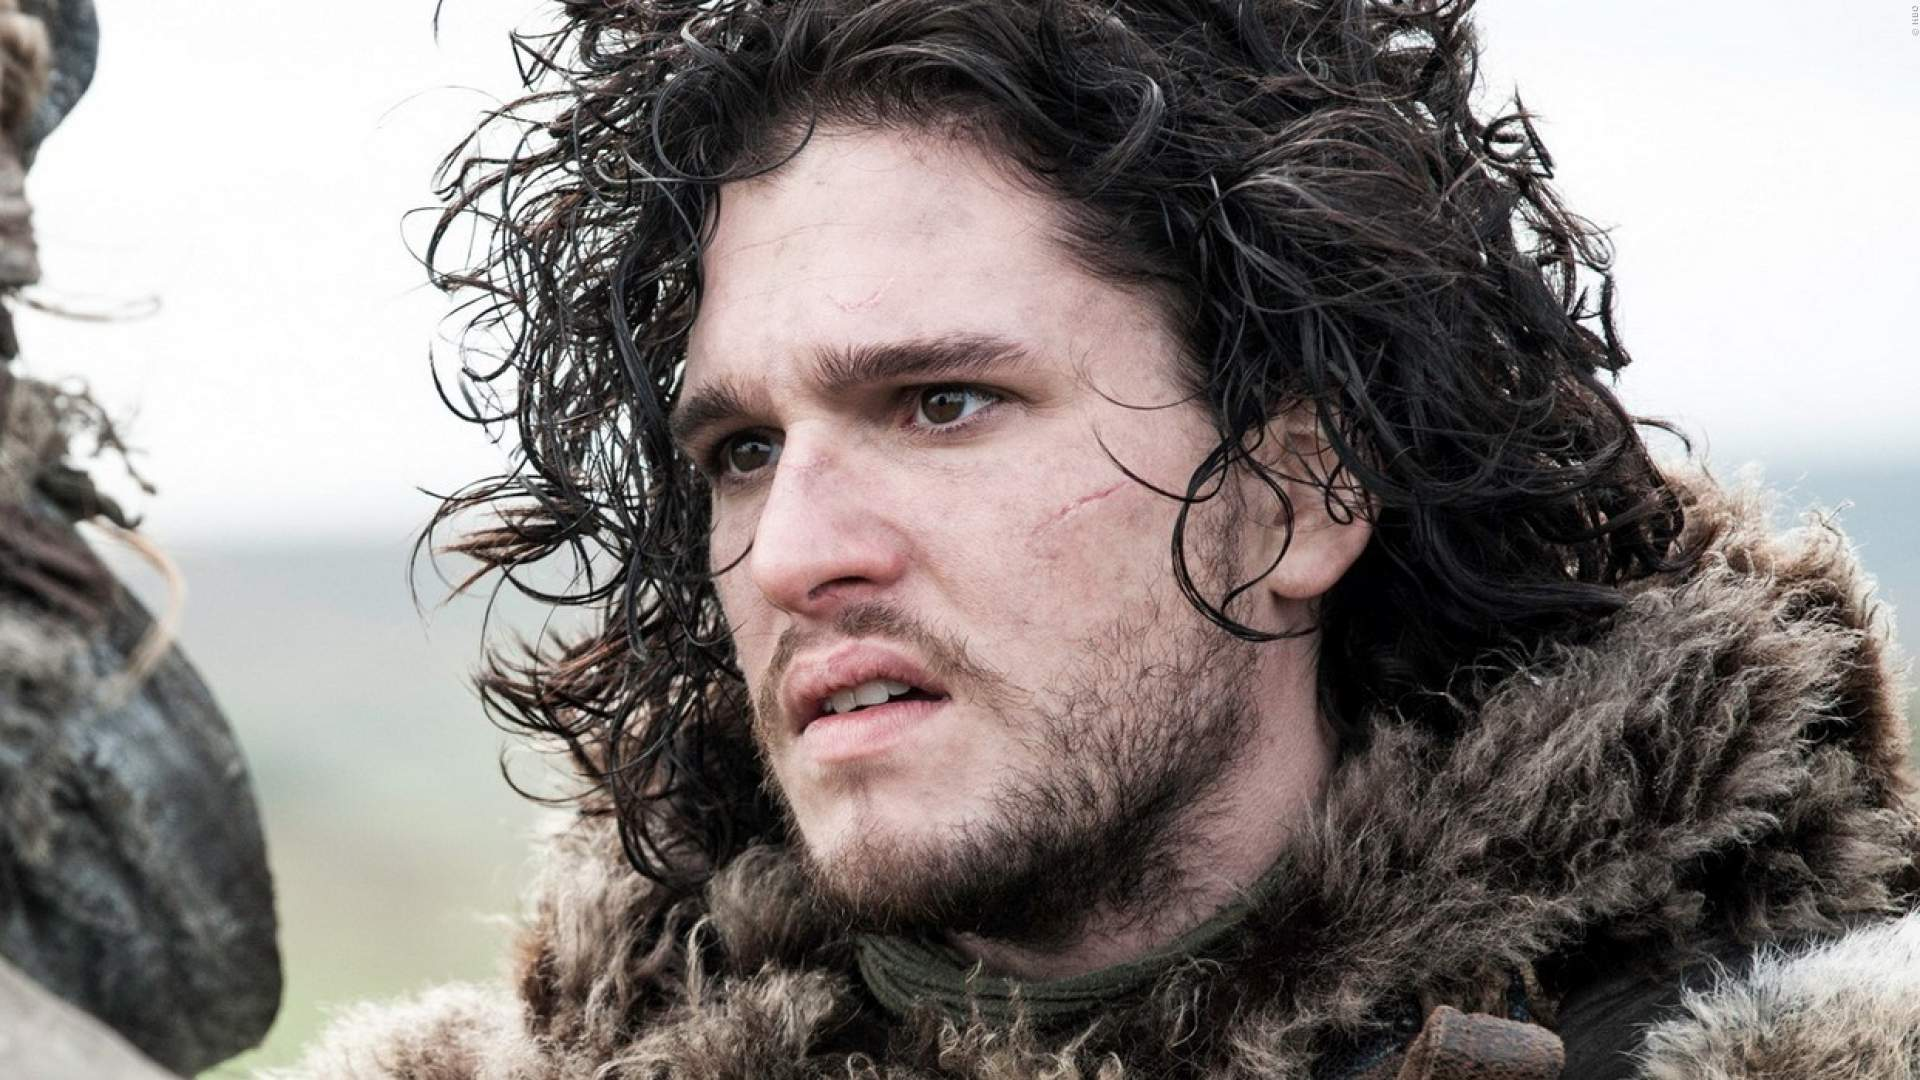 'Game Of Thrones': Jon Snows Stammbaum ein für alle Mal erklärt - Video